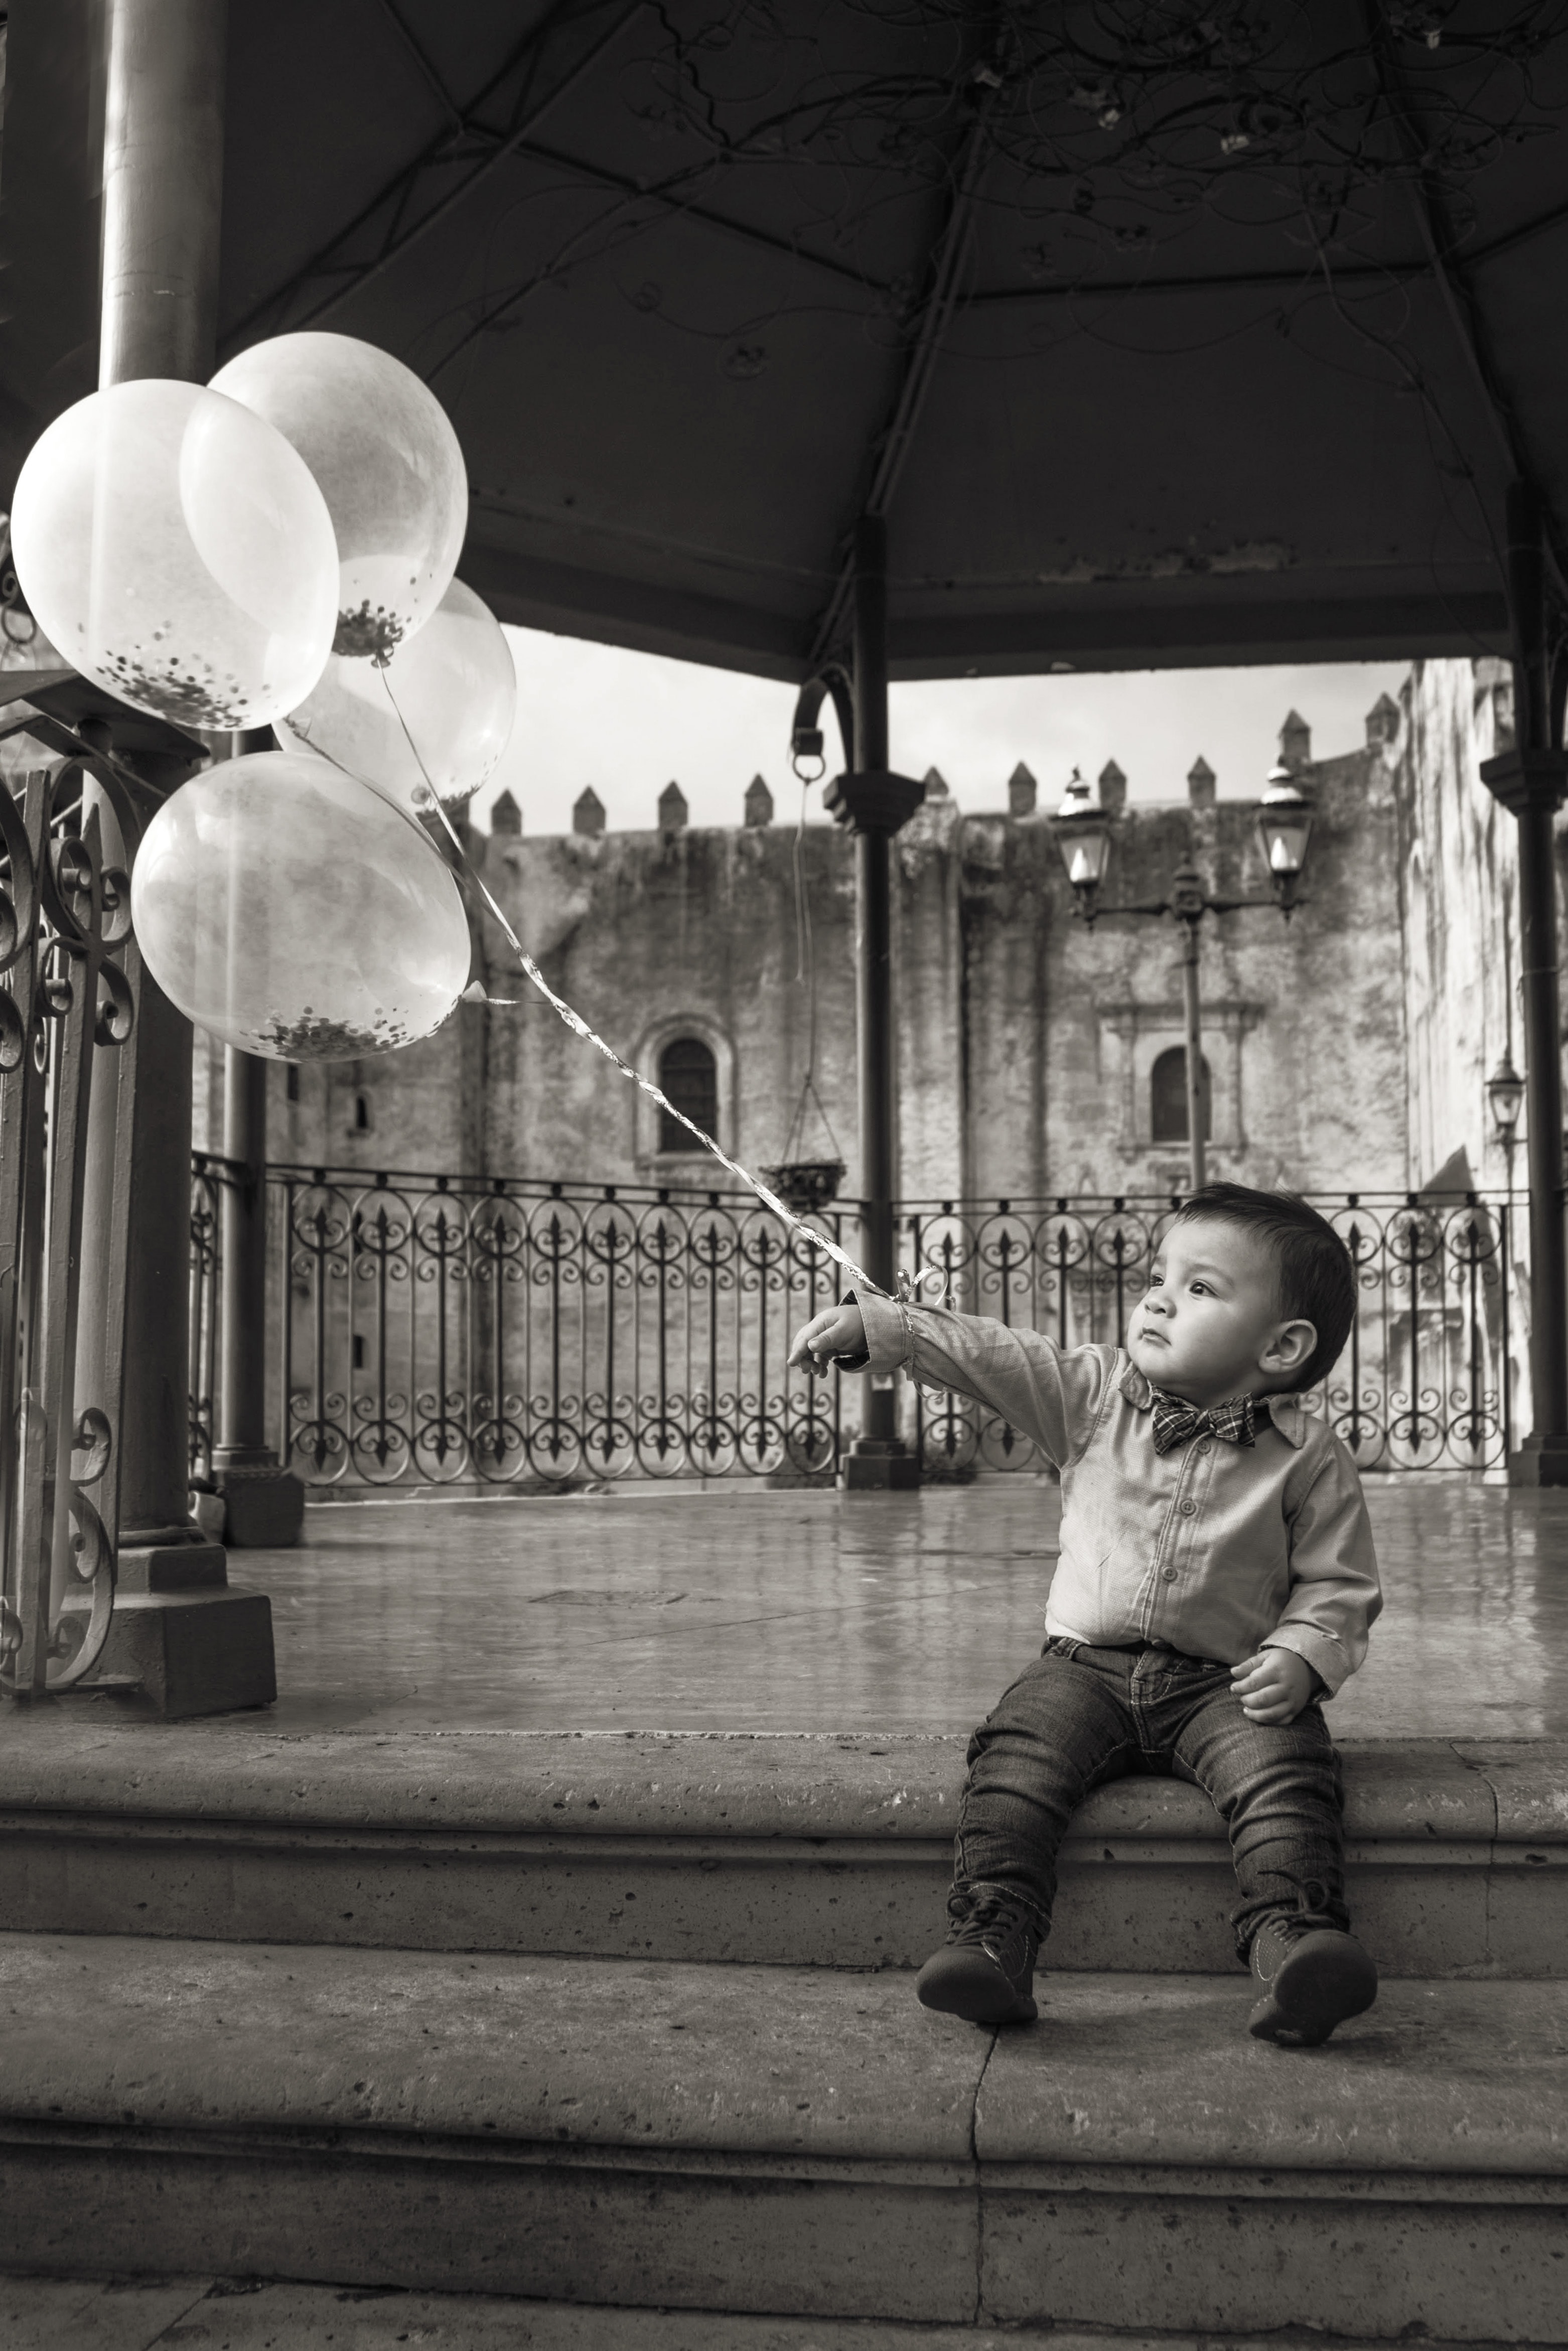 grayscale photography of boy holding balloons